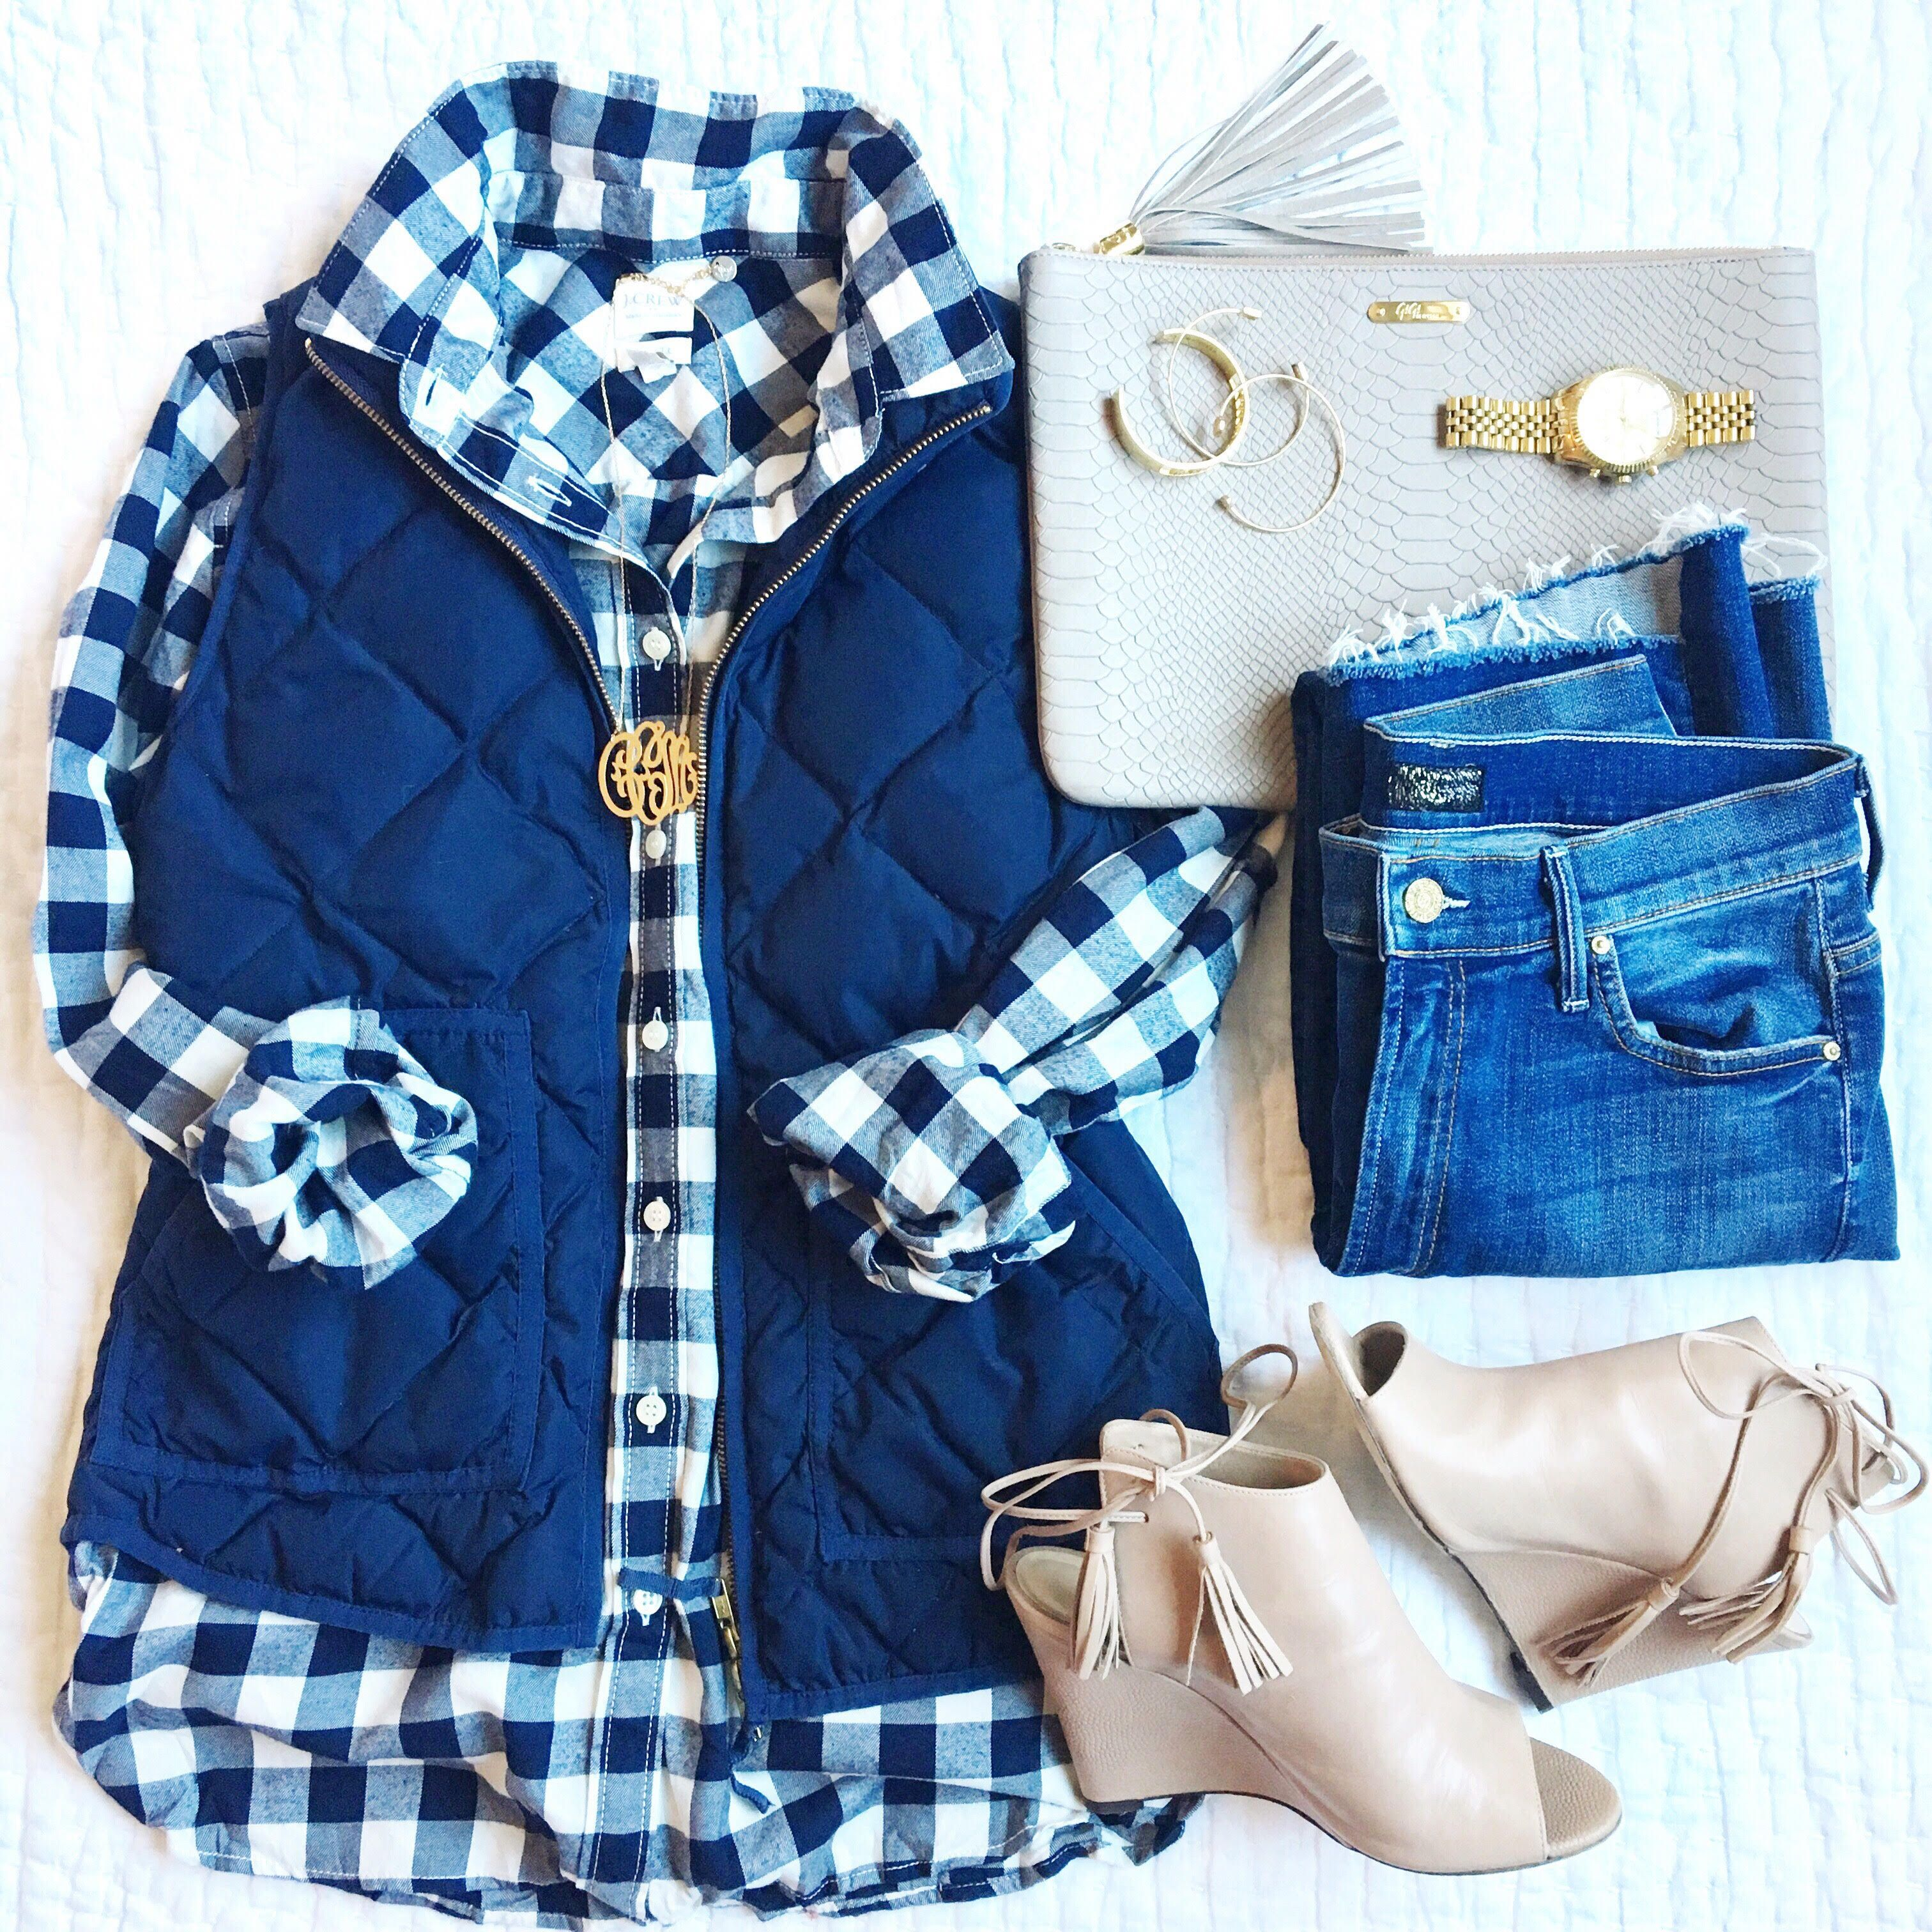 Casual flannel outfits   Days of Fall Layers  my style  Pinterest  Fall Fashion and Style